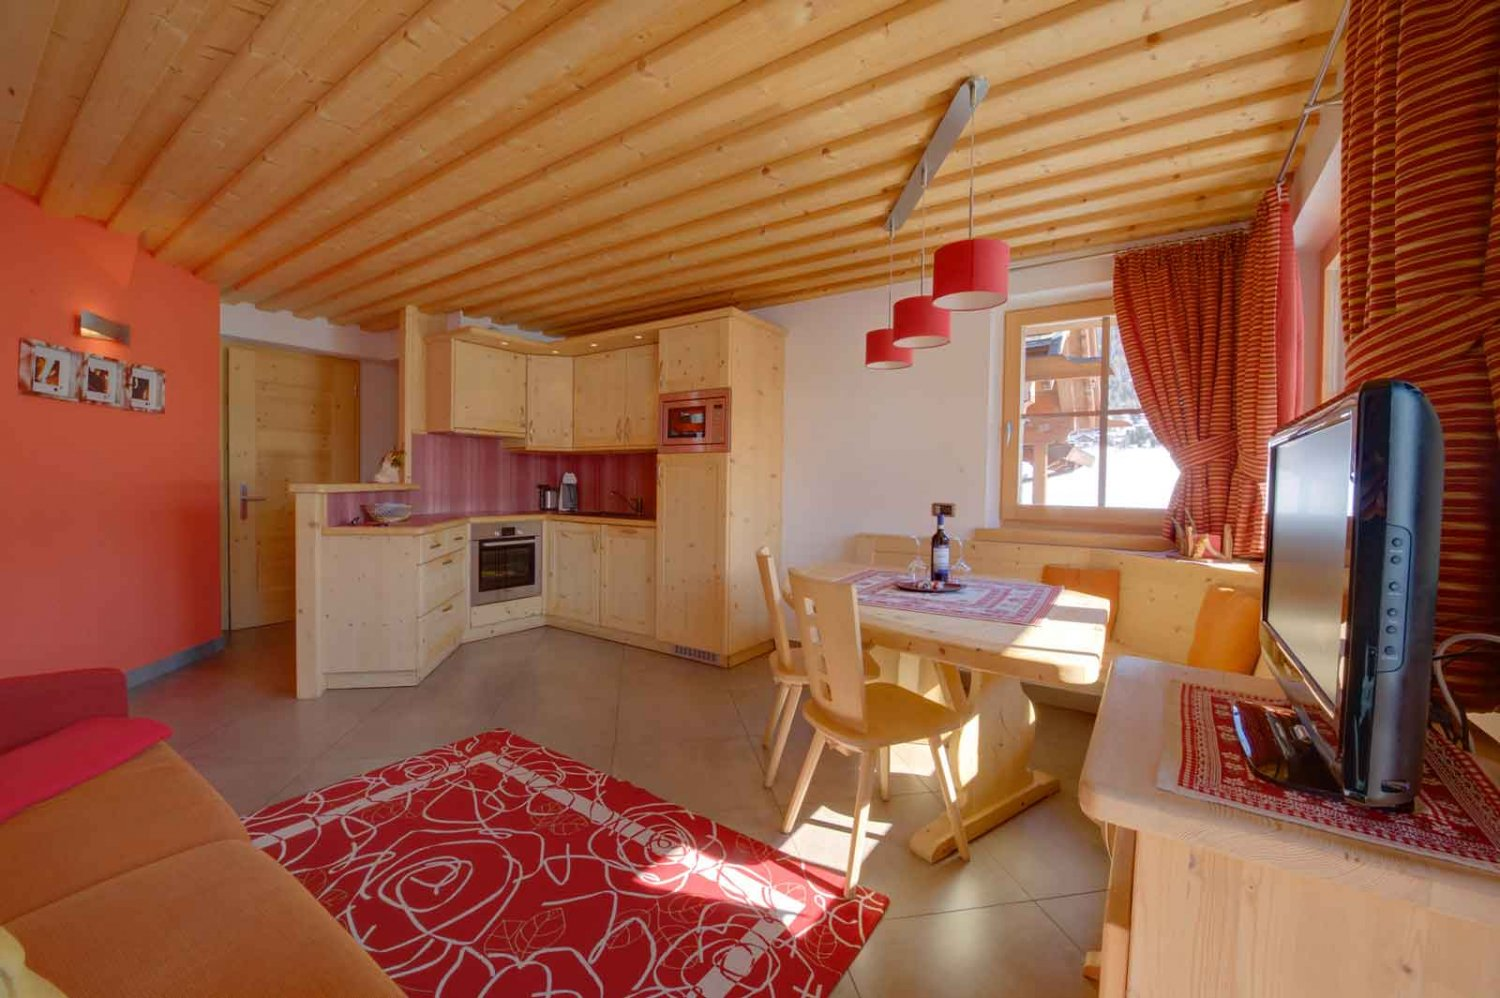 Chalet Nada - Chalet in the centre of Livigno - Partners - Orizzonte ...